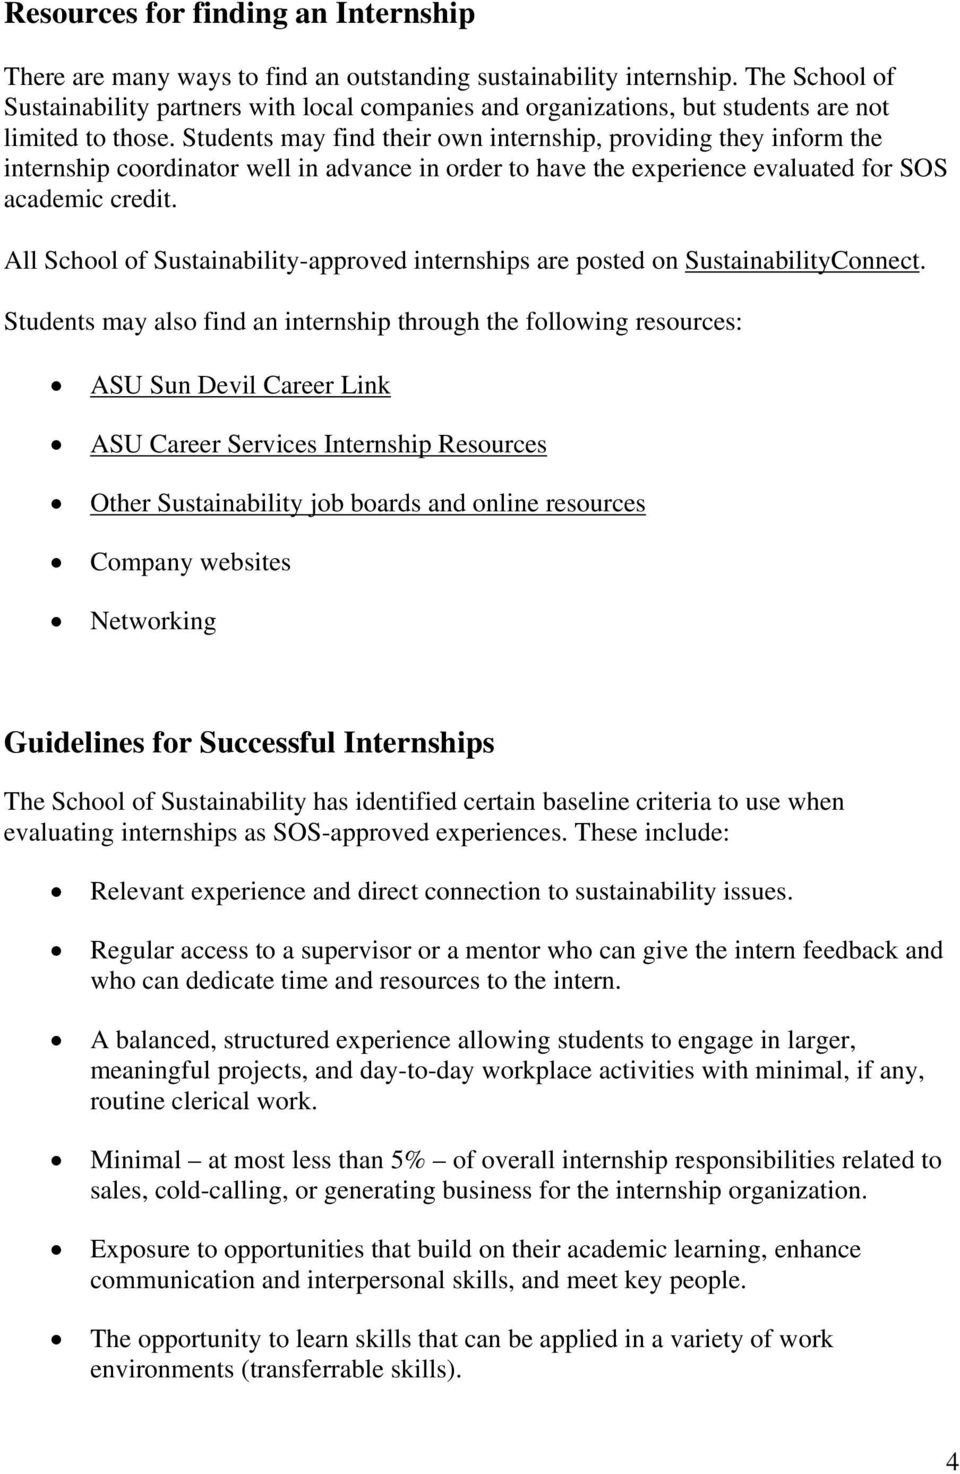 Students may find their own internship, providing they inform the internship coordinator well in advance in order to have the experience evaluated for SOS academic credit.